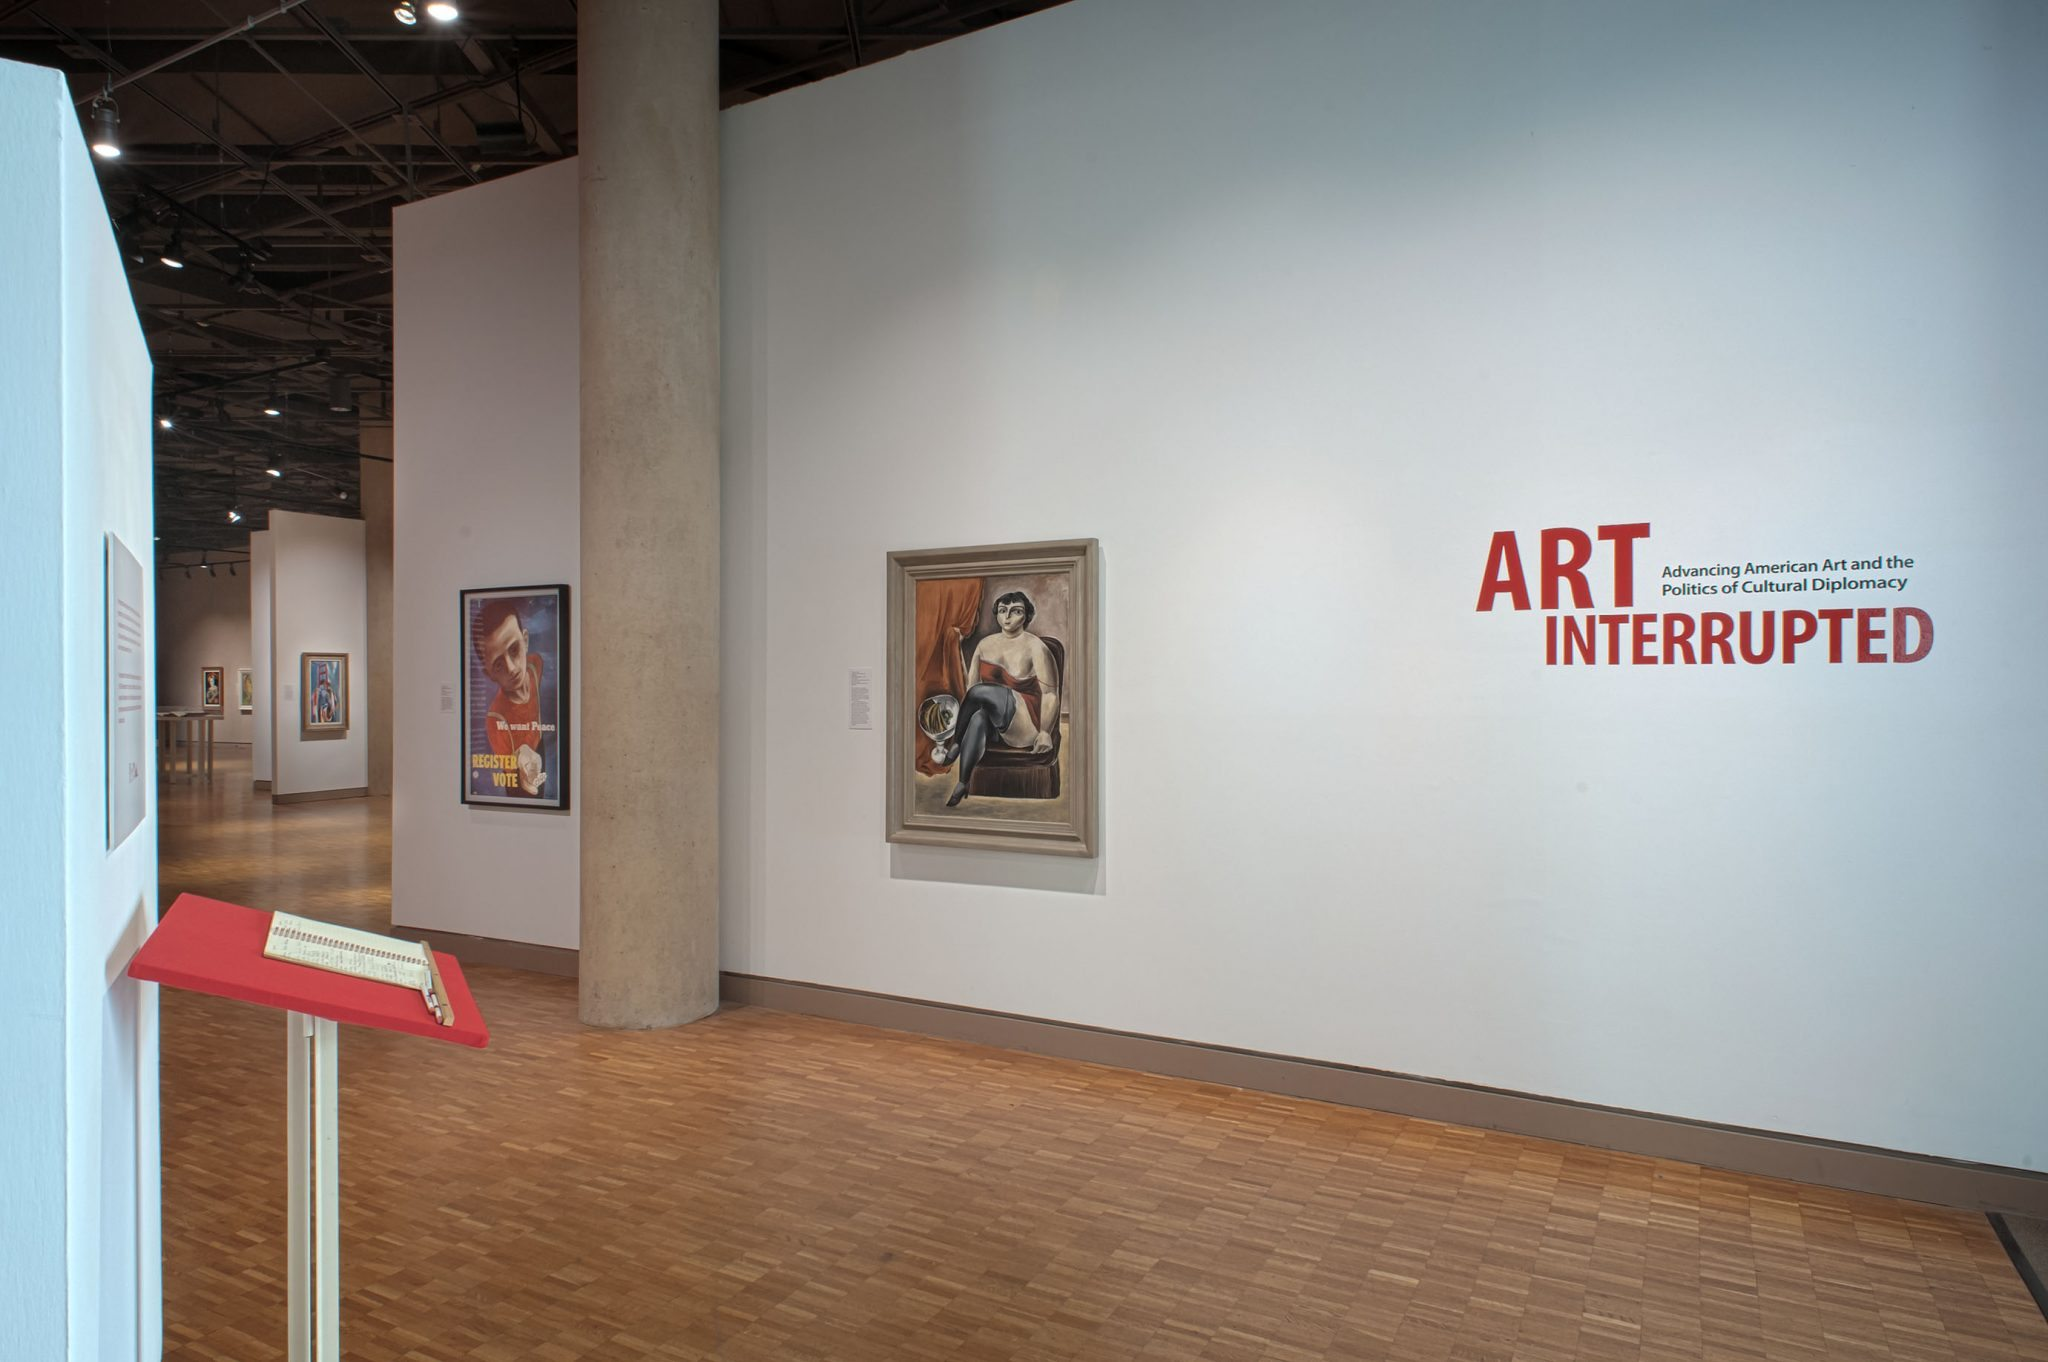 Fig 2. Installation view, Art Interrupted, Indiana University Art Museum, 2013. At left: Yasuo Kuniyoshi (American, born Japan, 1893‒1953), Circus Girl Resting, ca. 1925, oil on canvas, 99.7 x 73 cm, Jule Collins Smith Museum of Fine Art, Auburn University; Advancing American Art Collection 1948.1.22. Photograph by Kevin Montague.